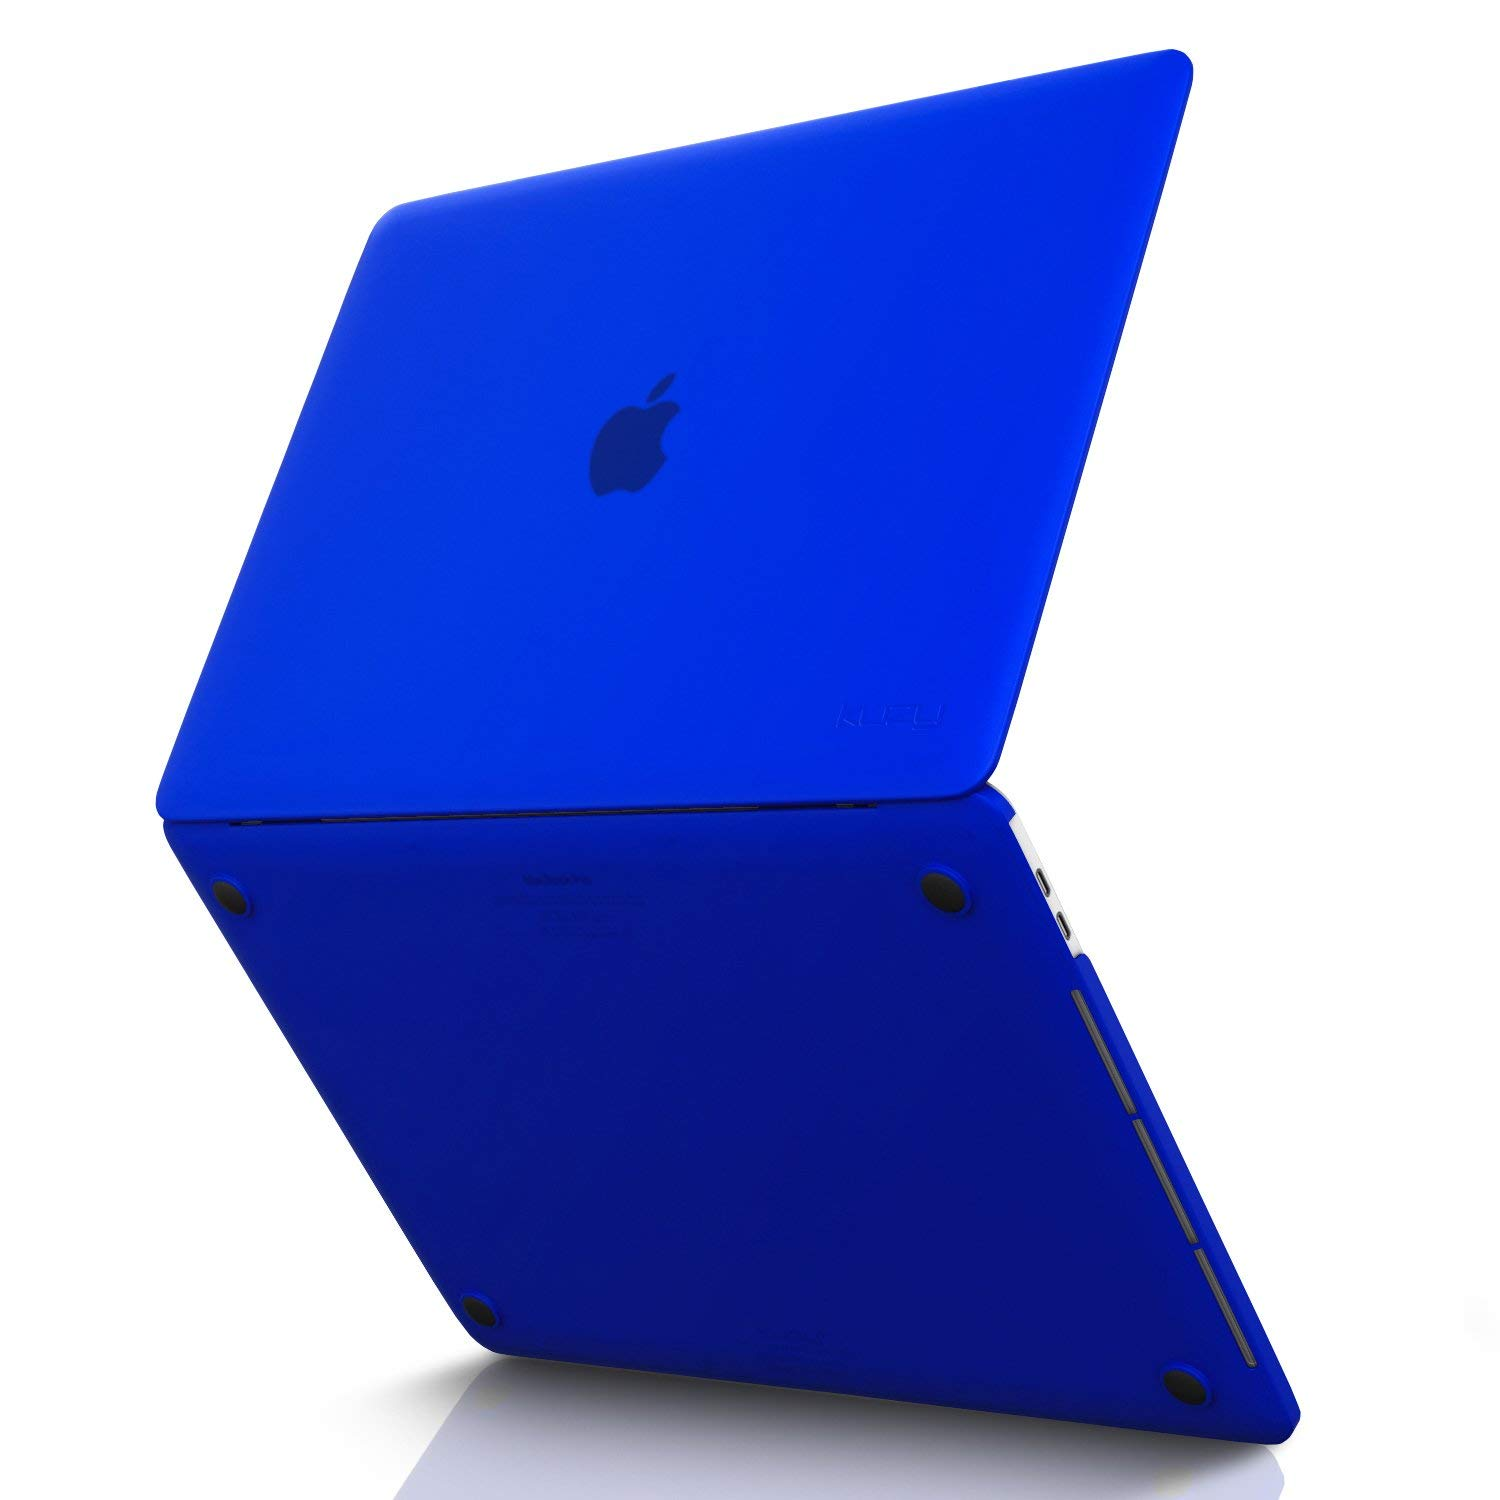 MacBook Pro 15 inch Case 2019 2018 2017 2016 Release A1990 A1707, Kuzy Hard Plastic Shell Cover for Newest MacBook Pro 15 case with Touch Bar Soft Touch - Blue